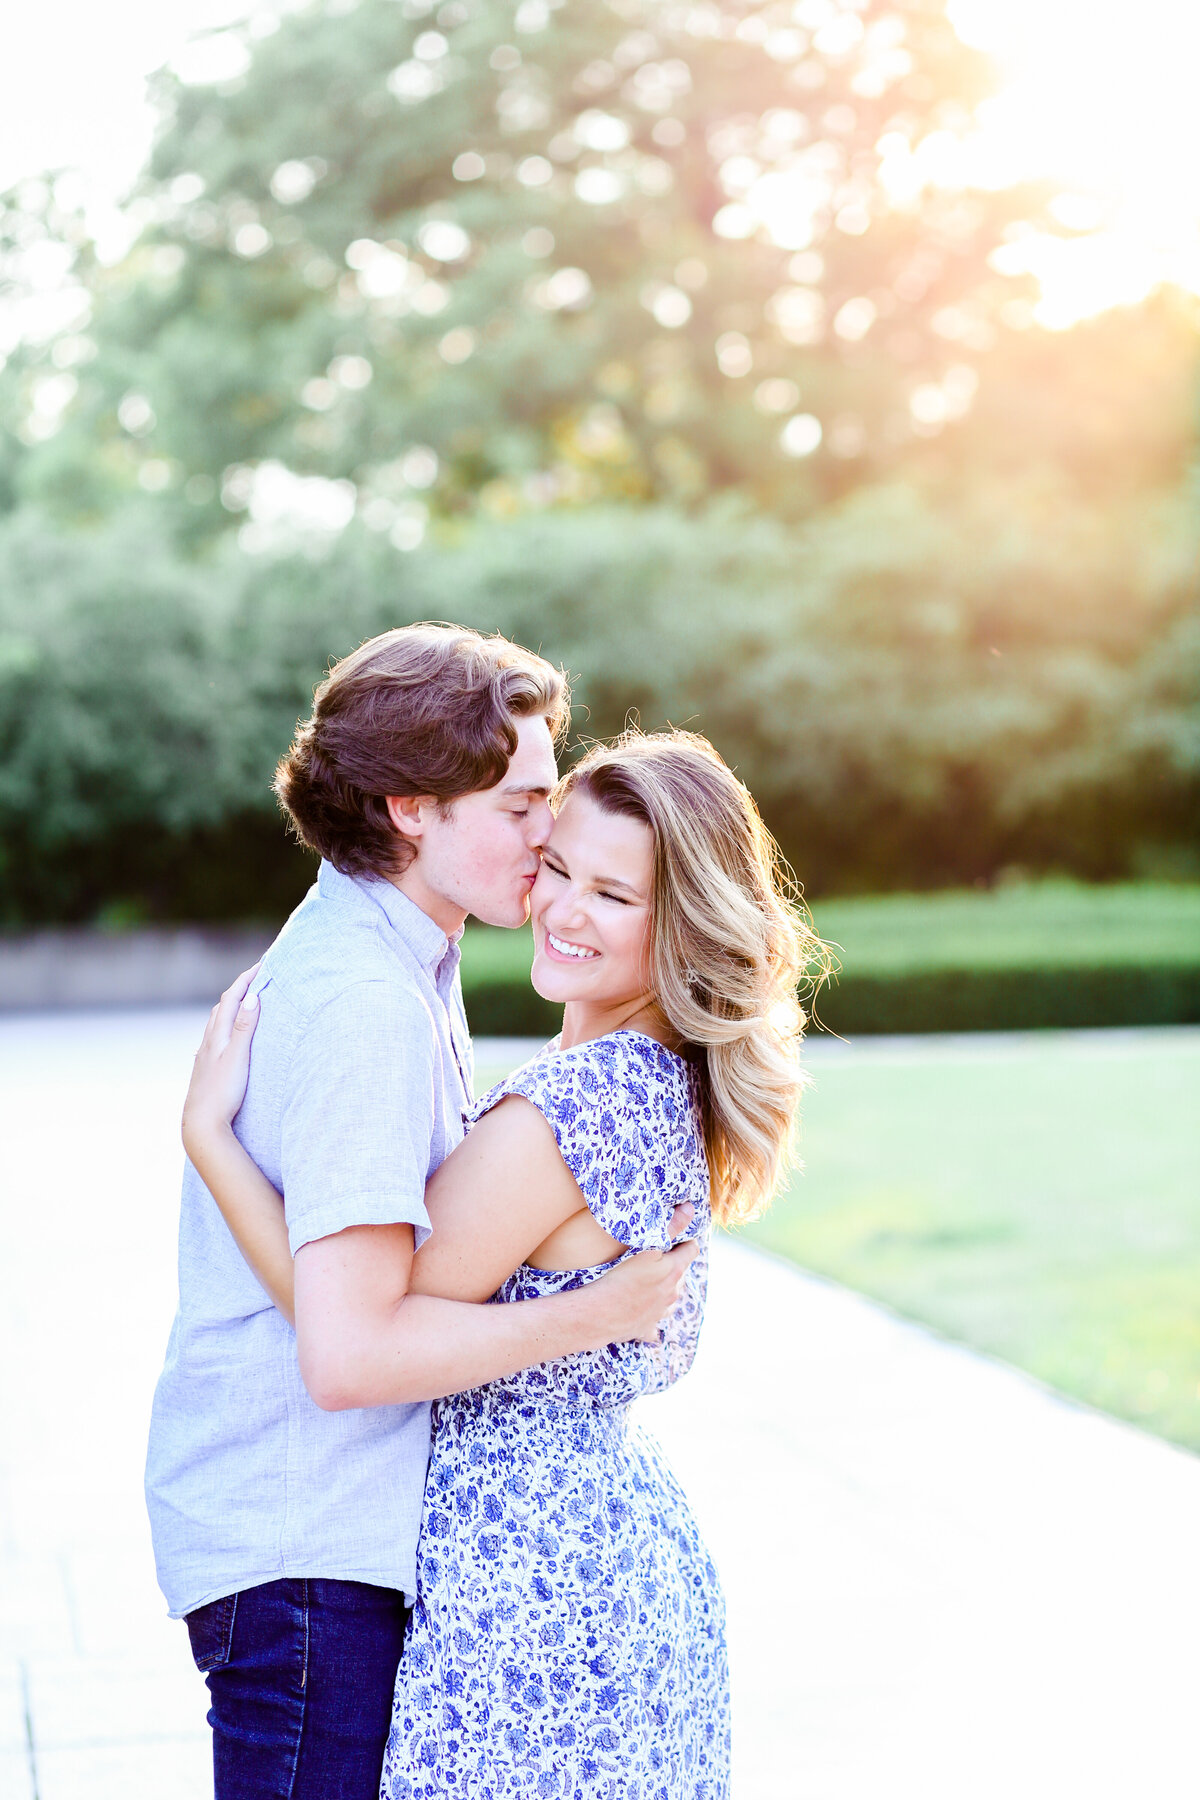 Jessica + Jacob - Kansas City Engagement Portraits (111 of 217)